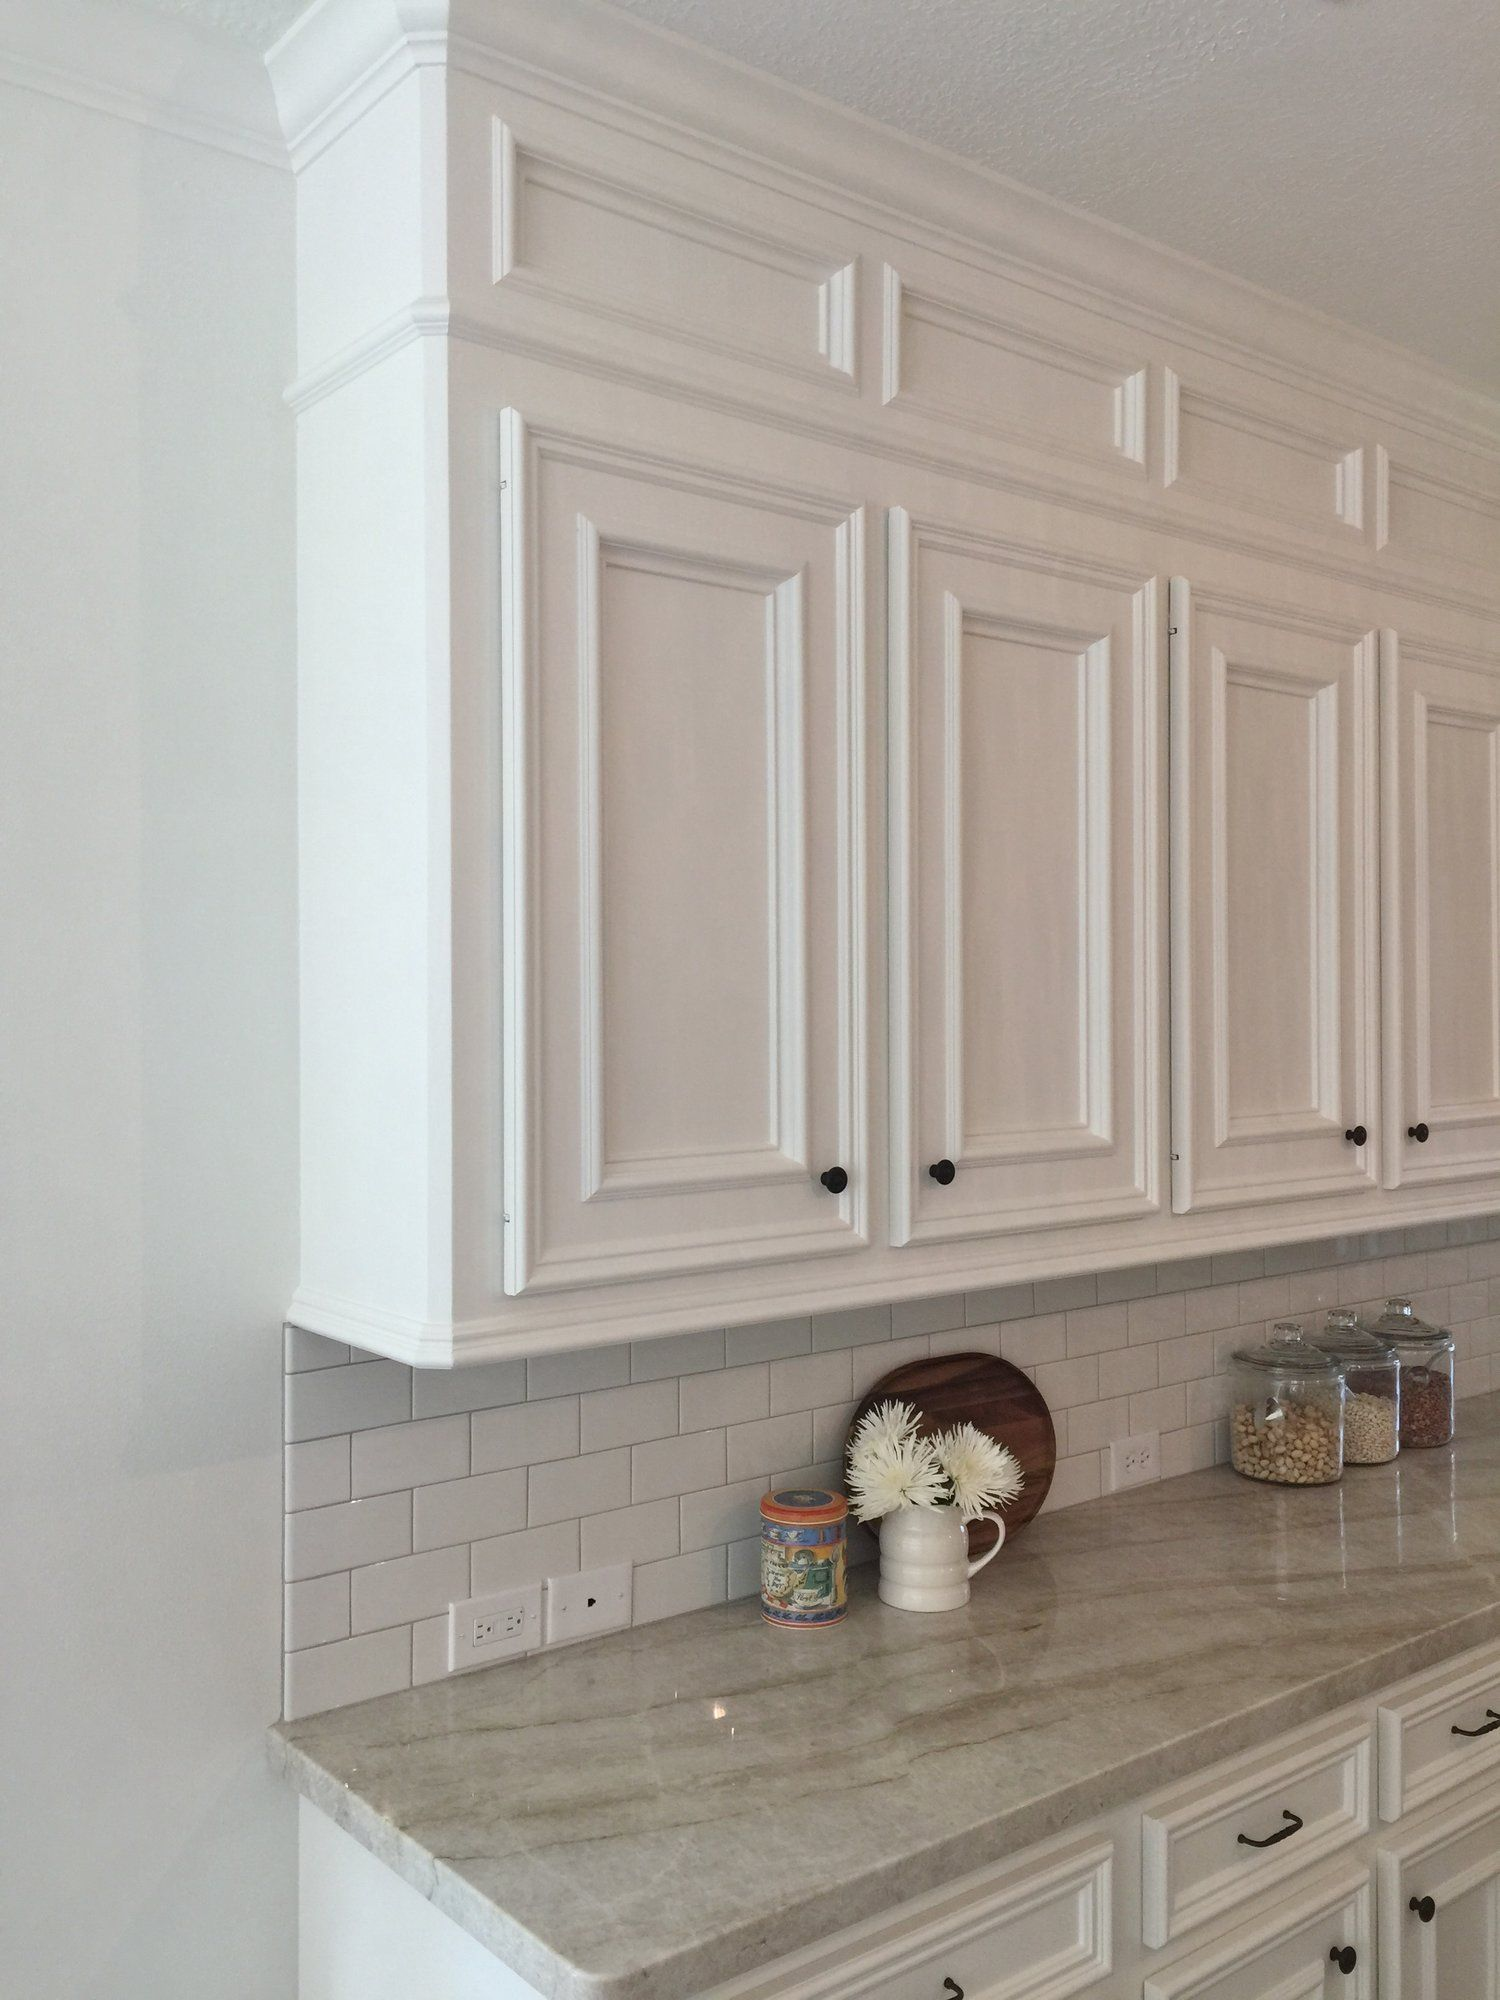 Hinges For Kitchen Cabinets After - Modified cabinetry with new knife hinges replacing exposed hinges